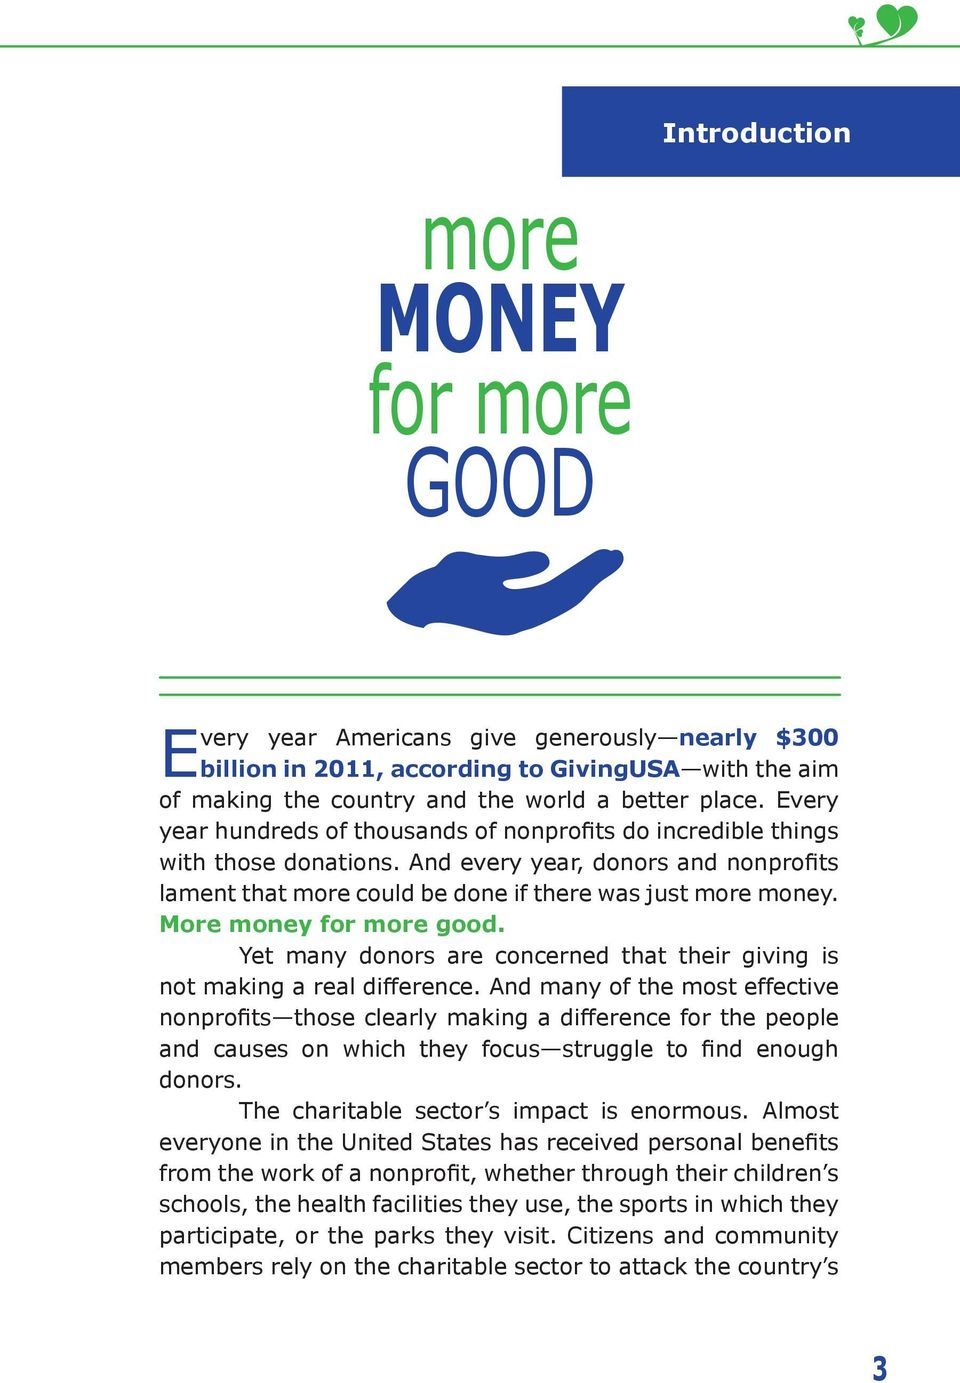 And every year, donors and nonprofits lament that more could be done if there was just more money. More money for more good.